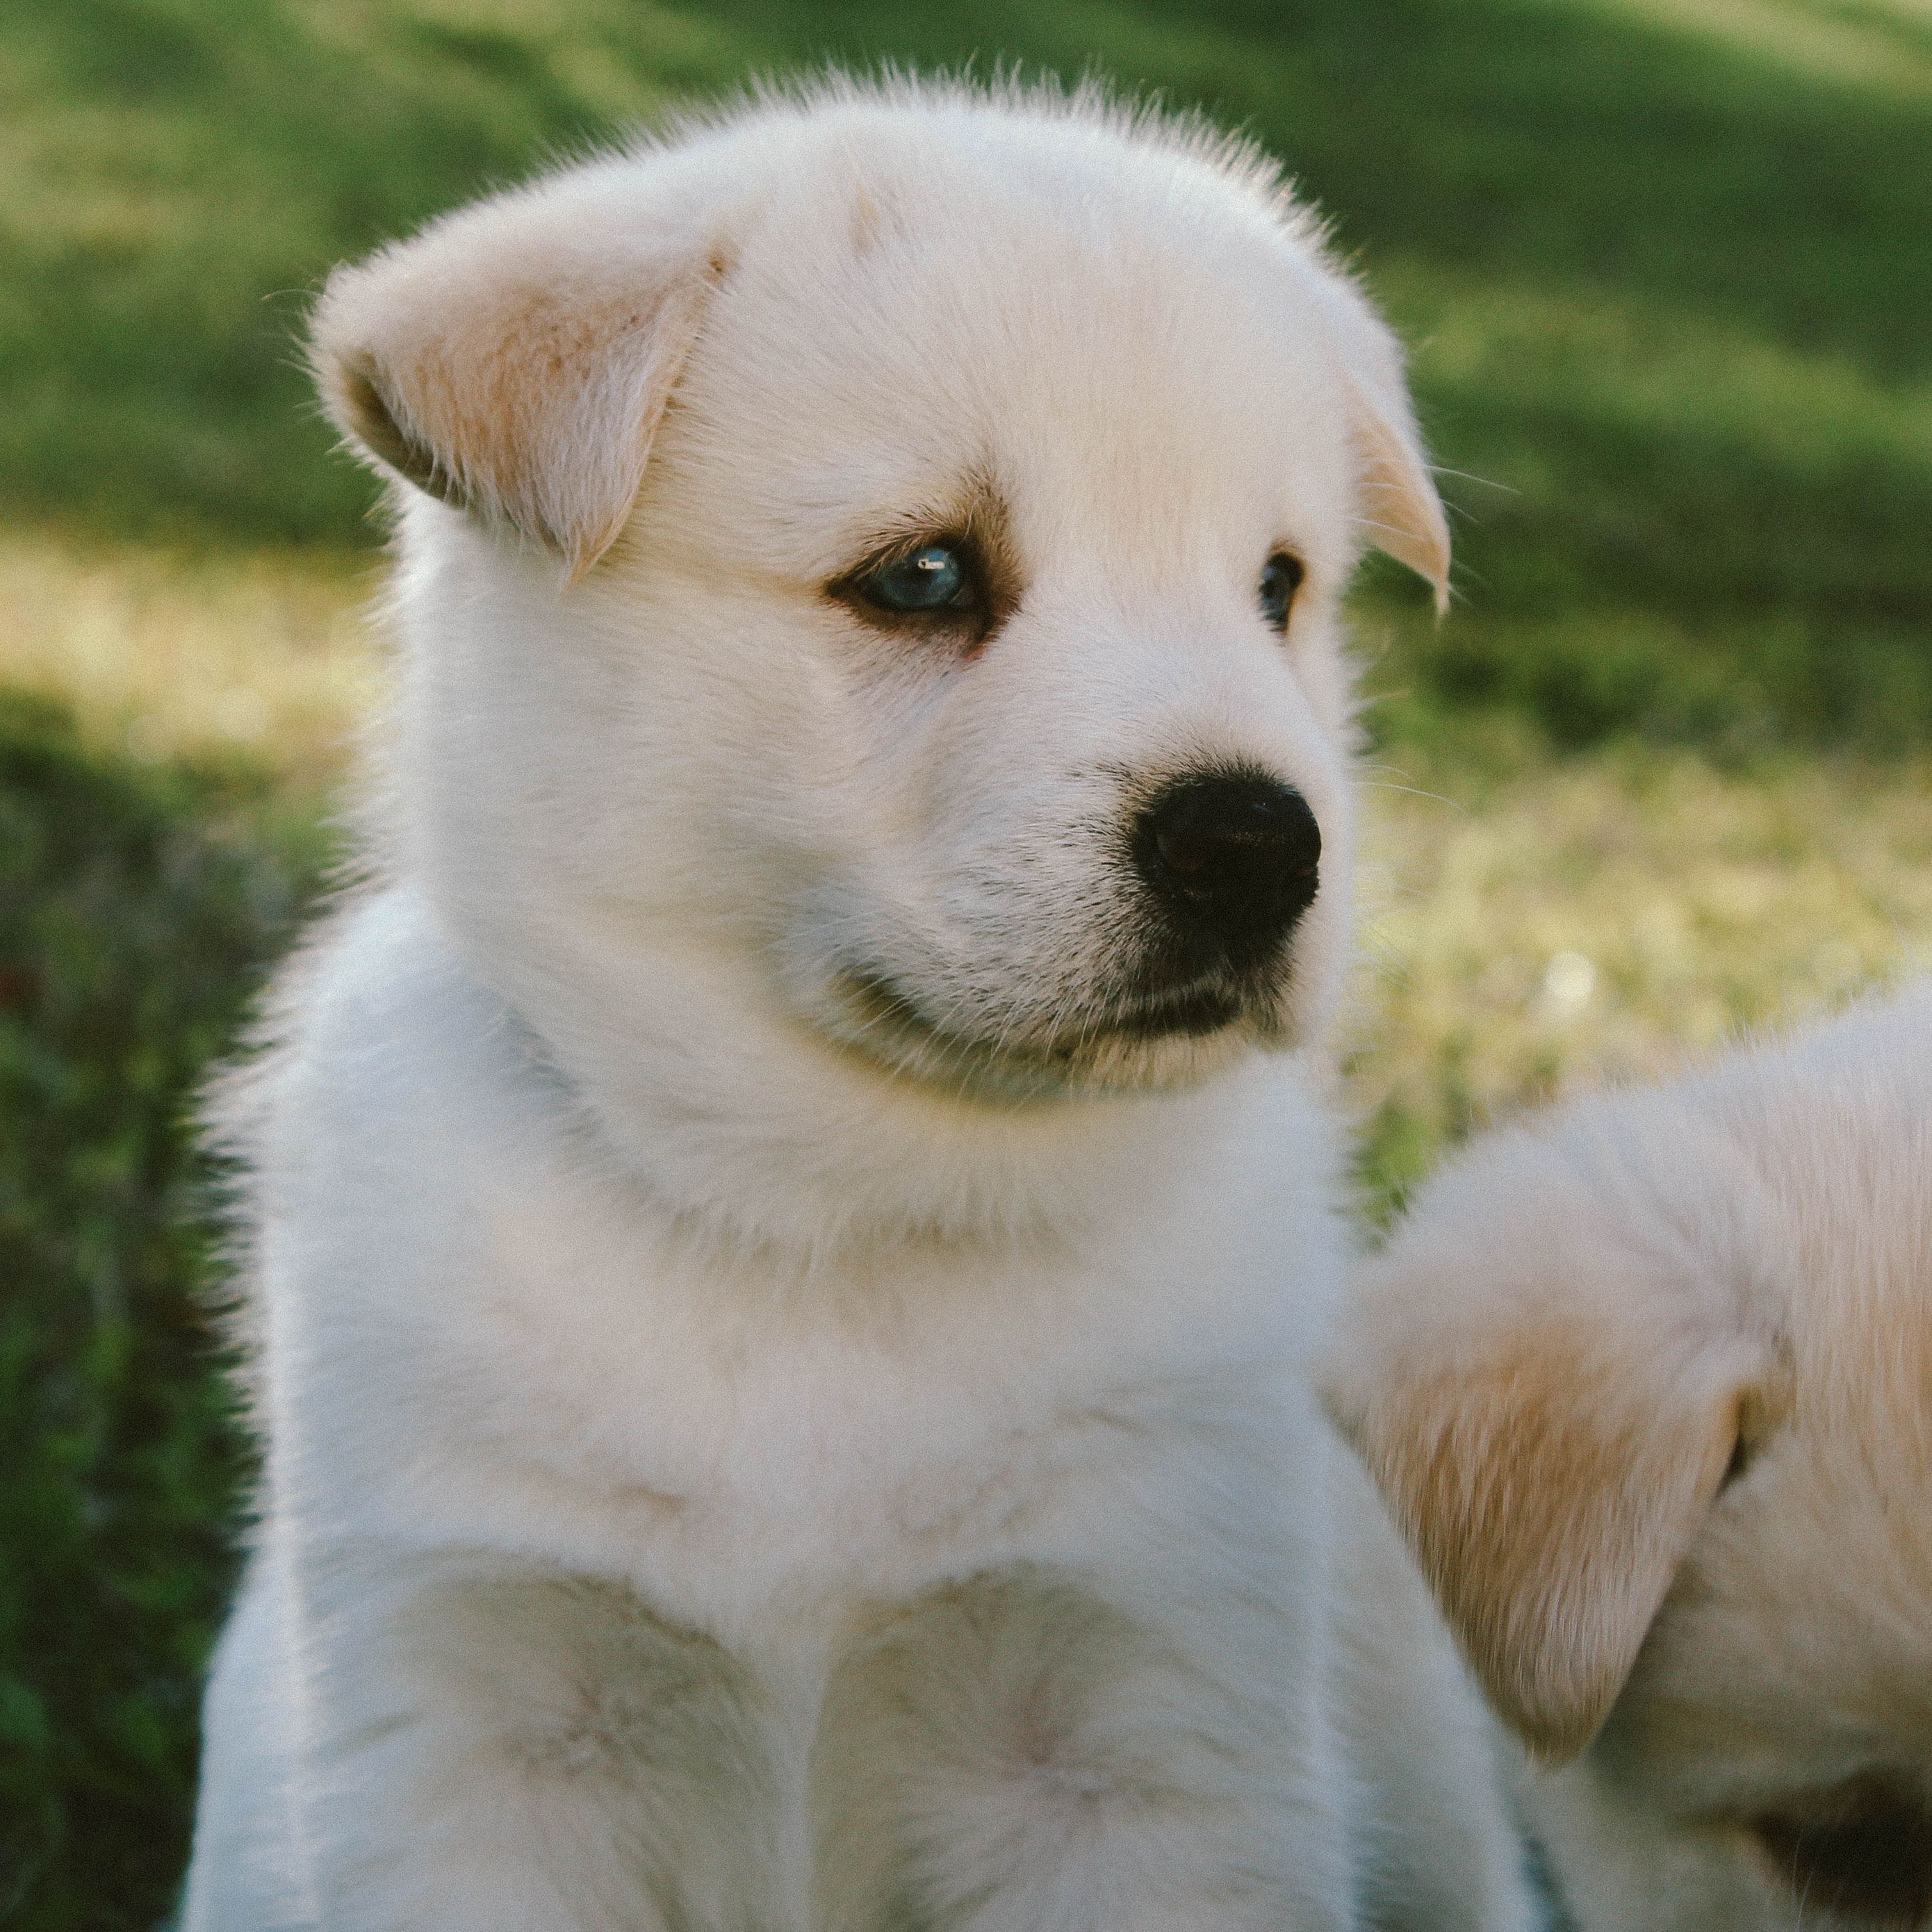 2780x2780 Wallpaper puppy, dog, muzzle, cute